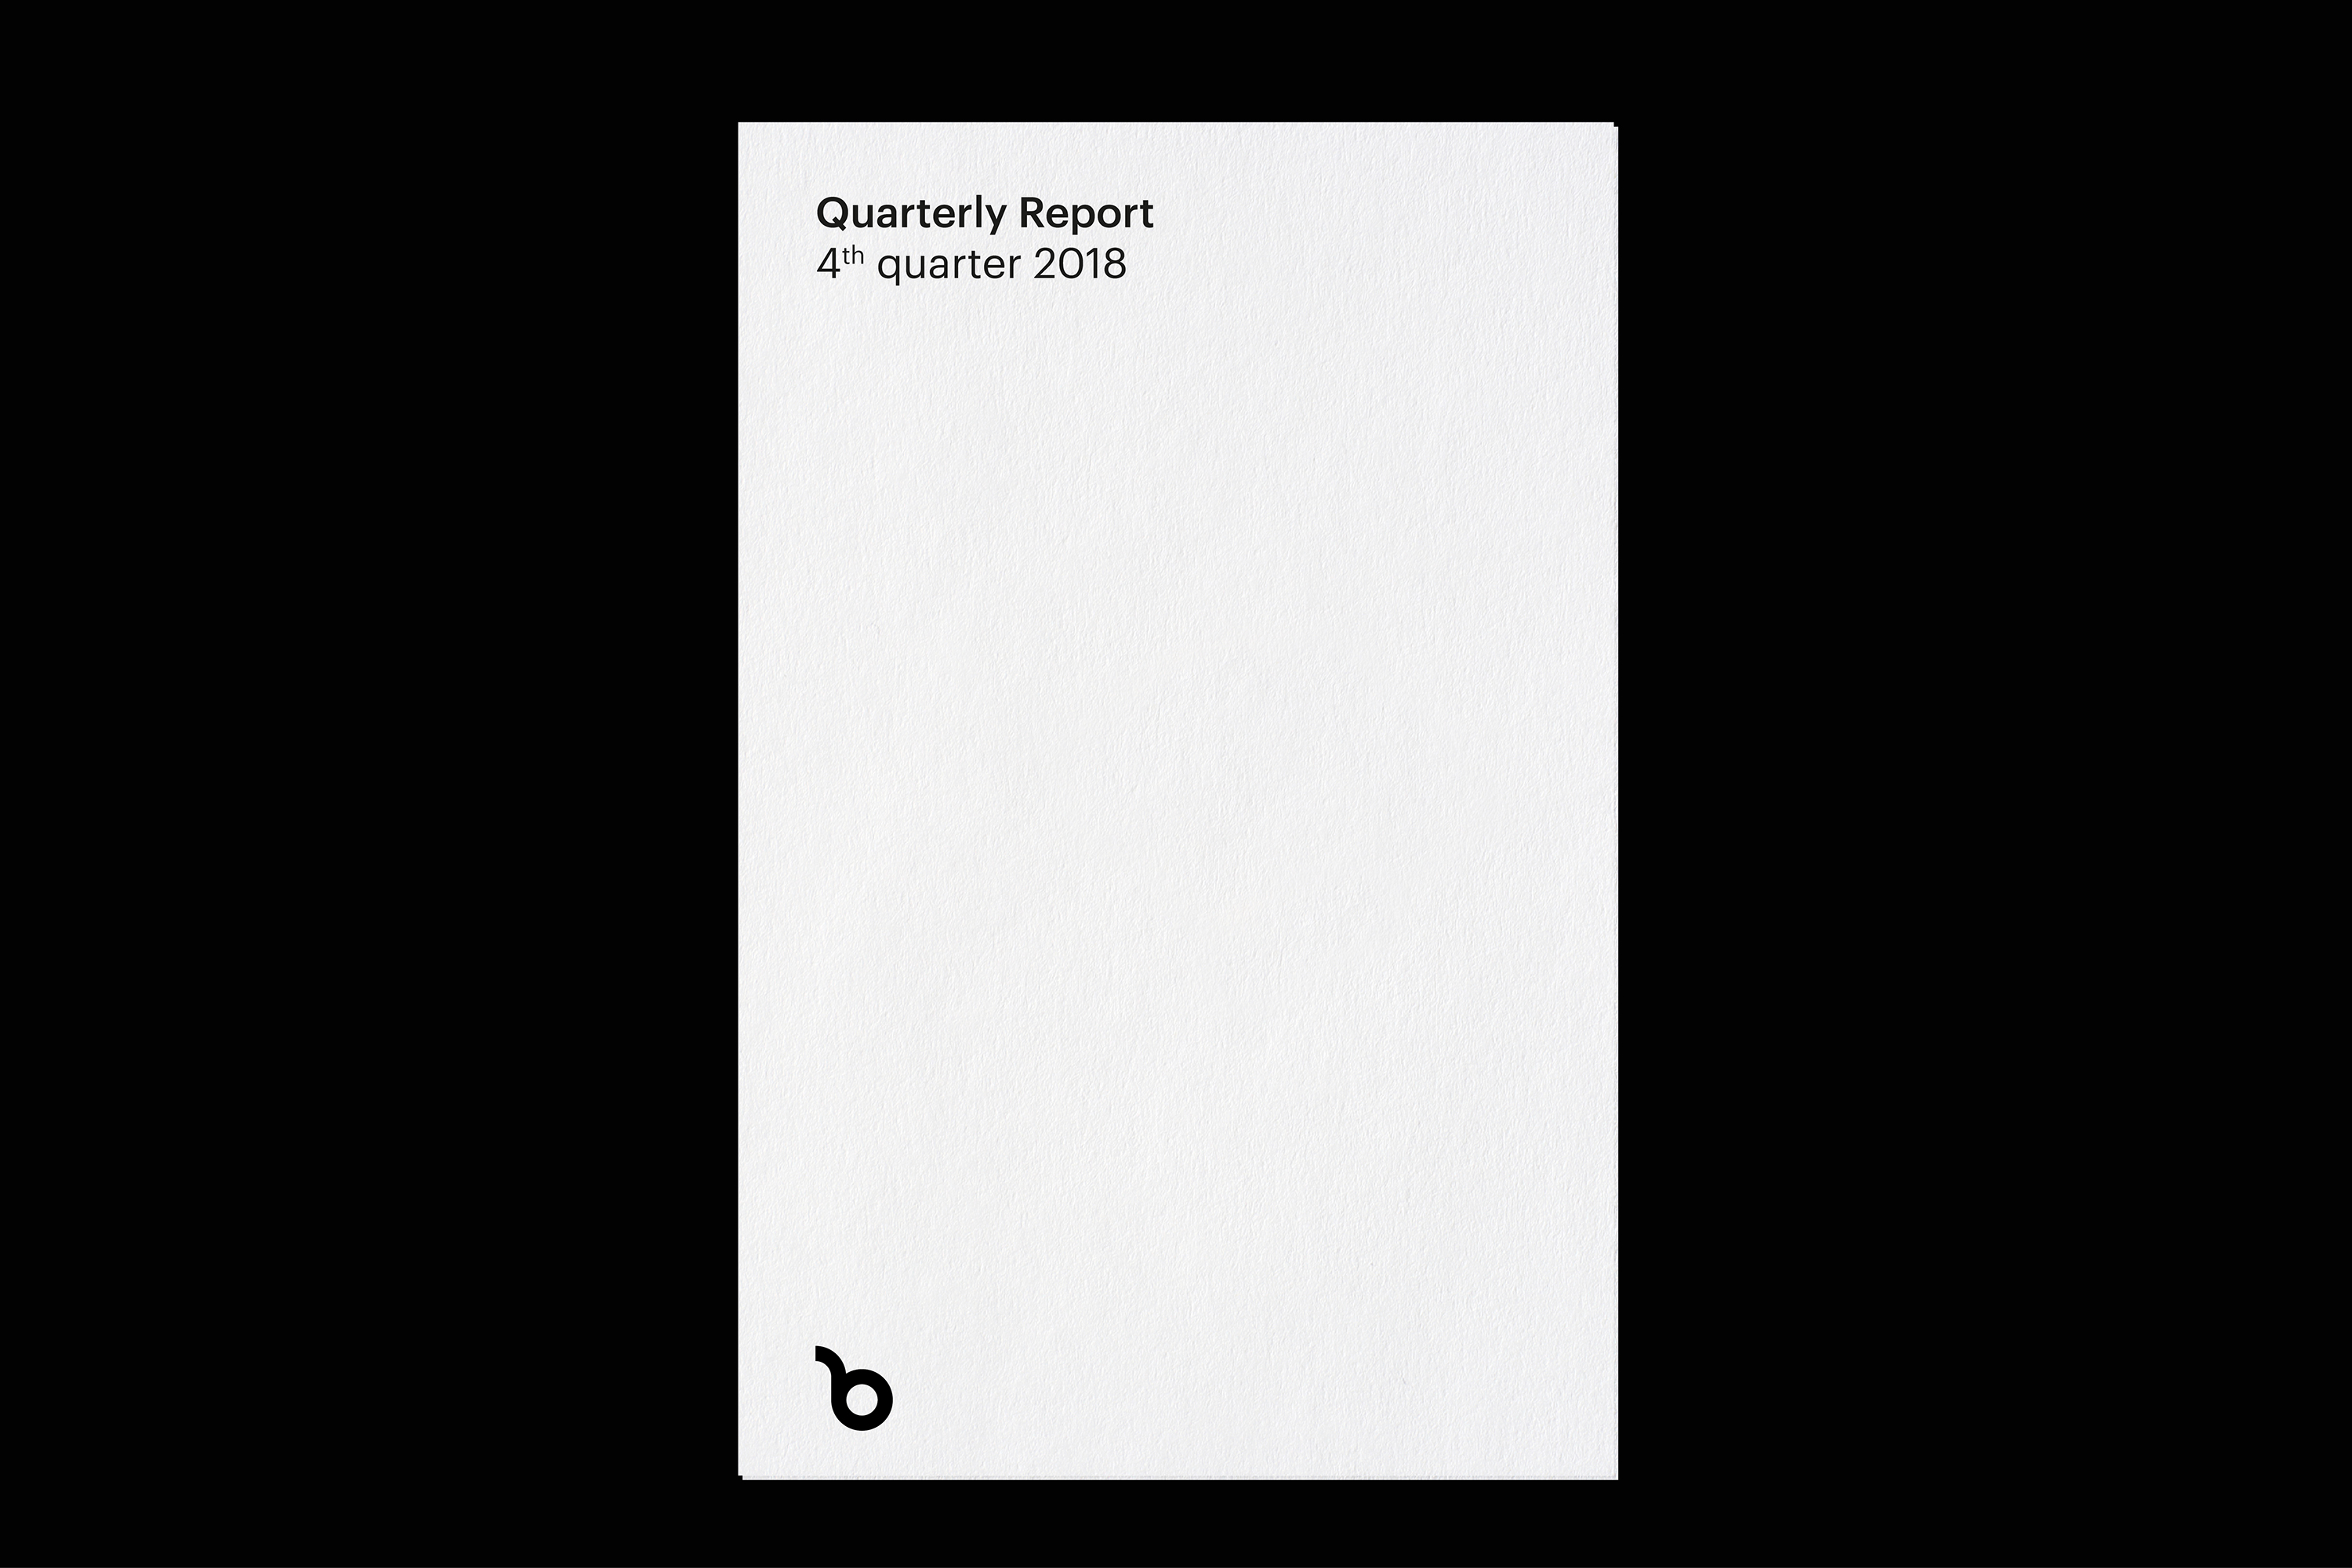 brandpad_quarterly